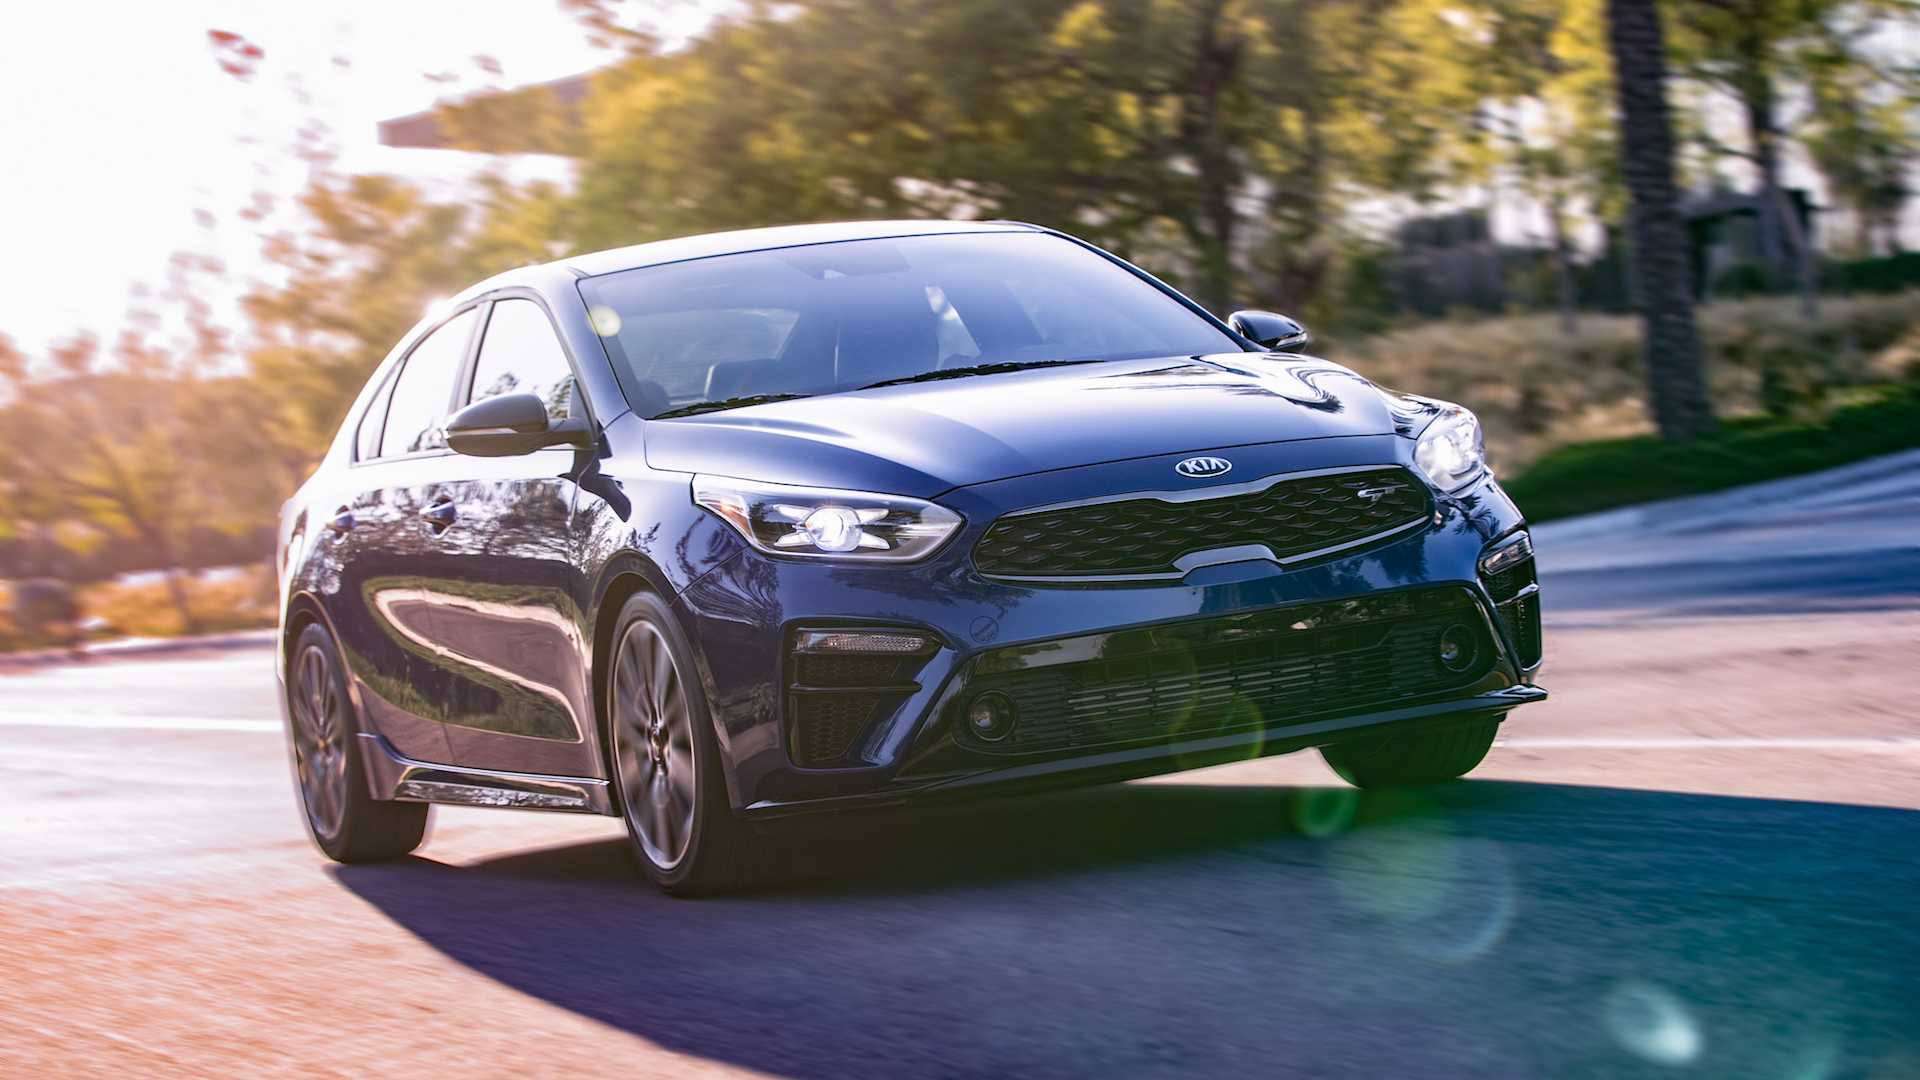 69 New Kia Forte 2020 Exterior Date New Review by Kia Forte 2020 Exterior Date